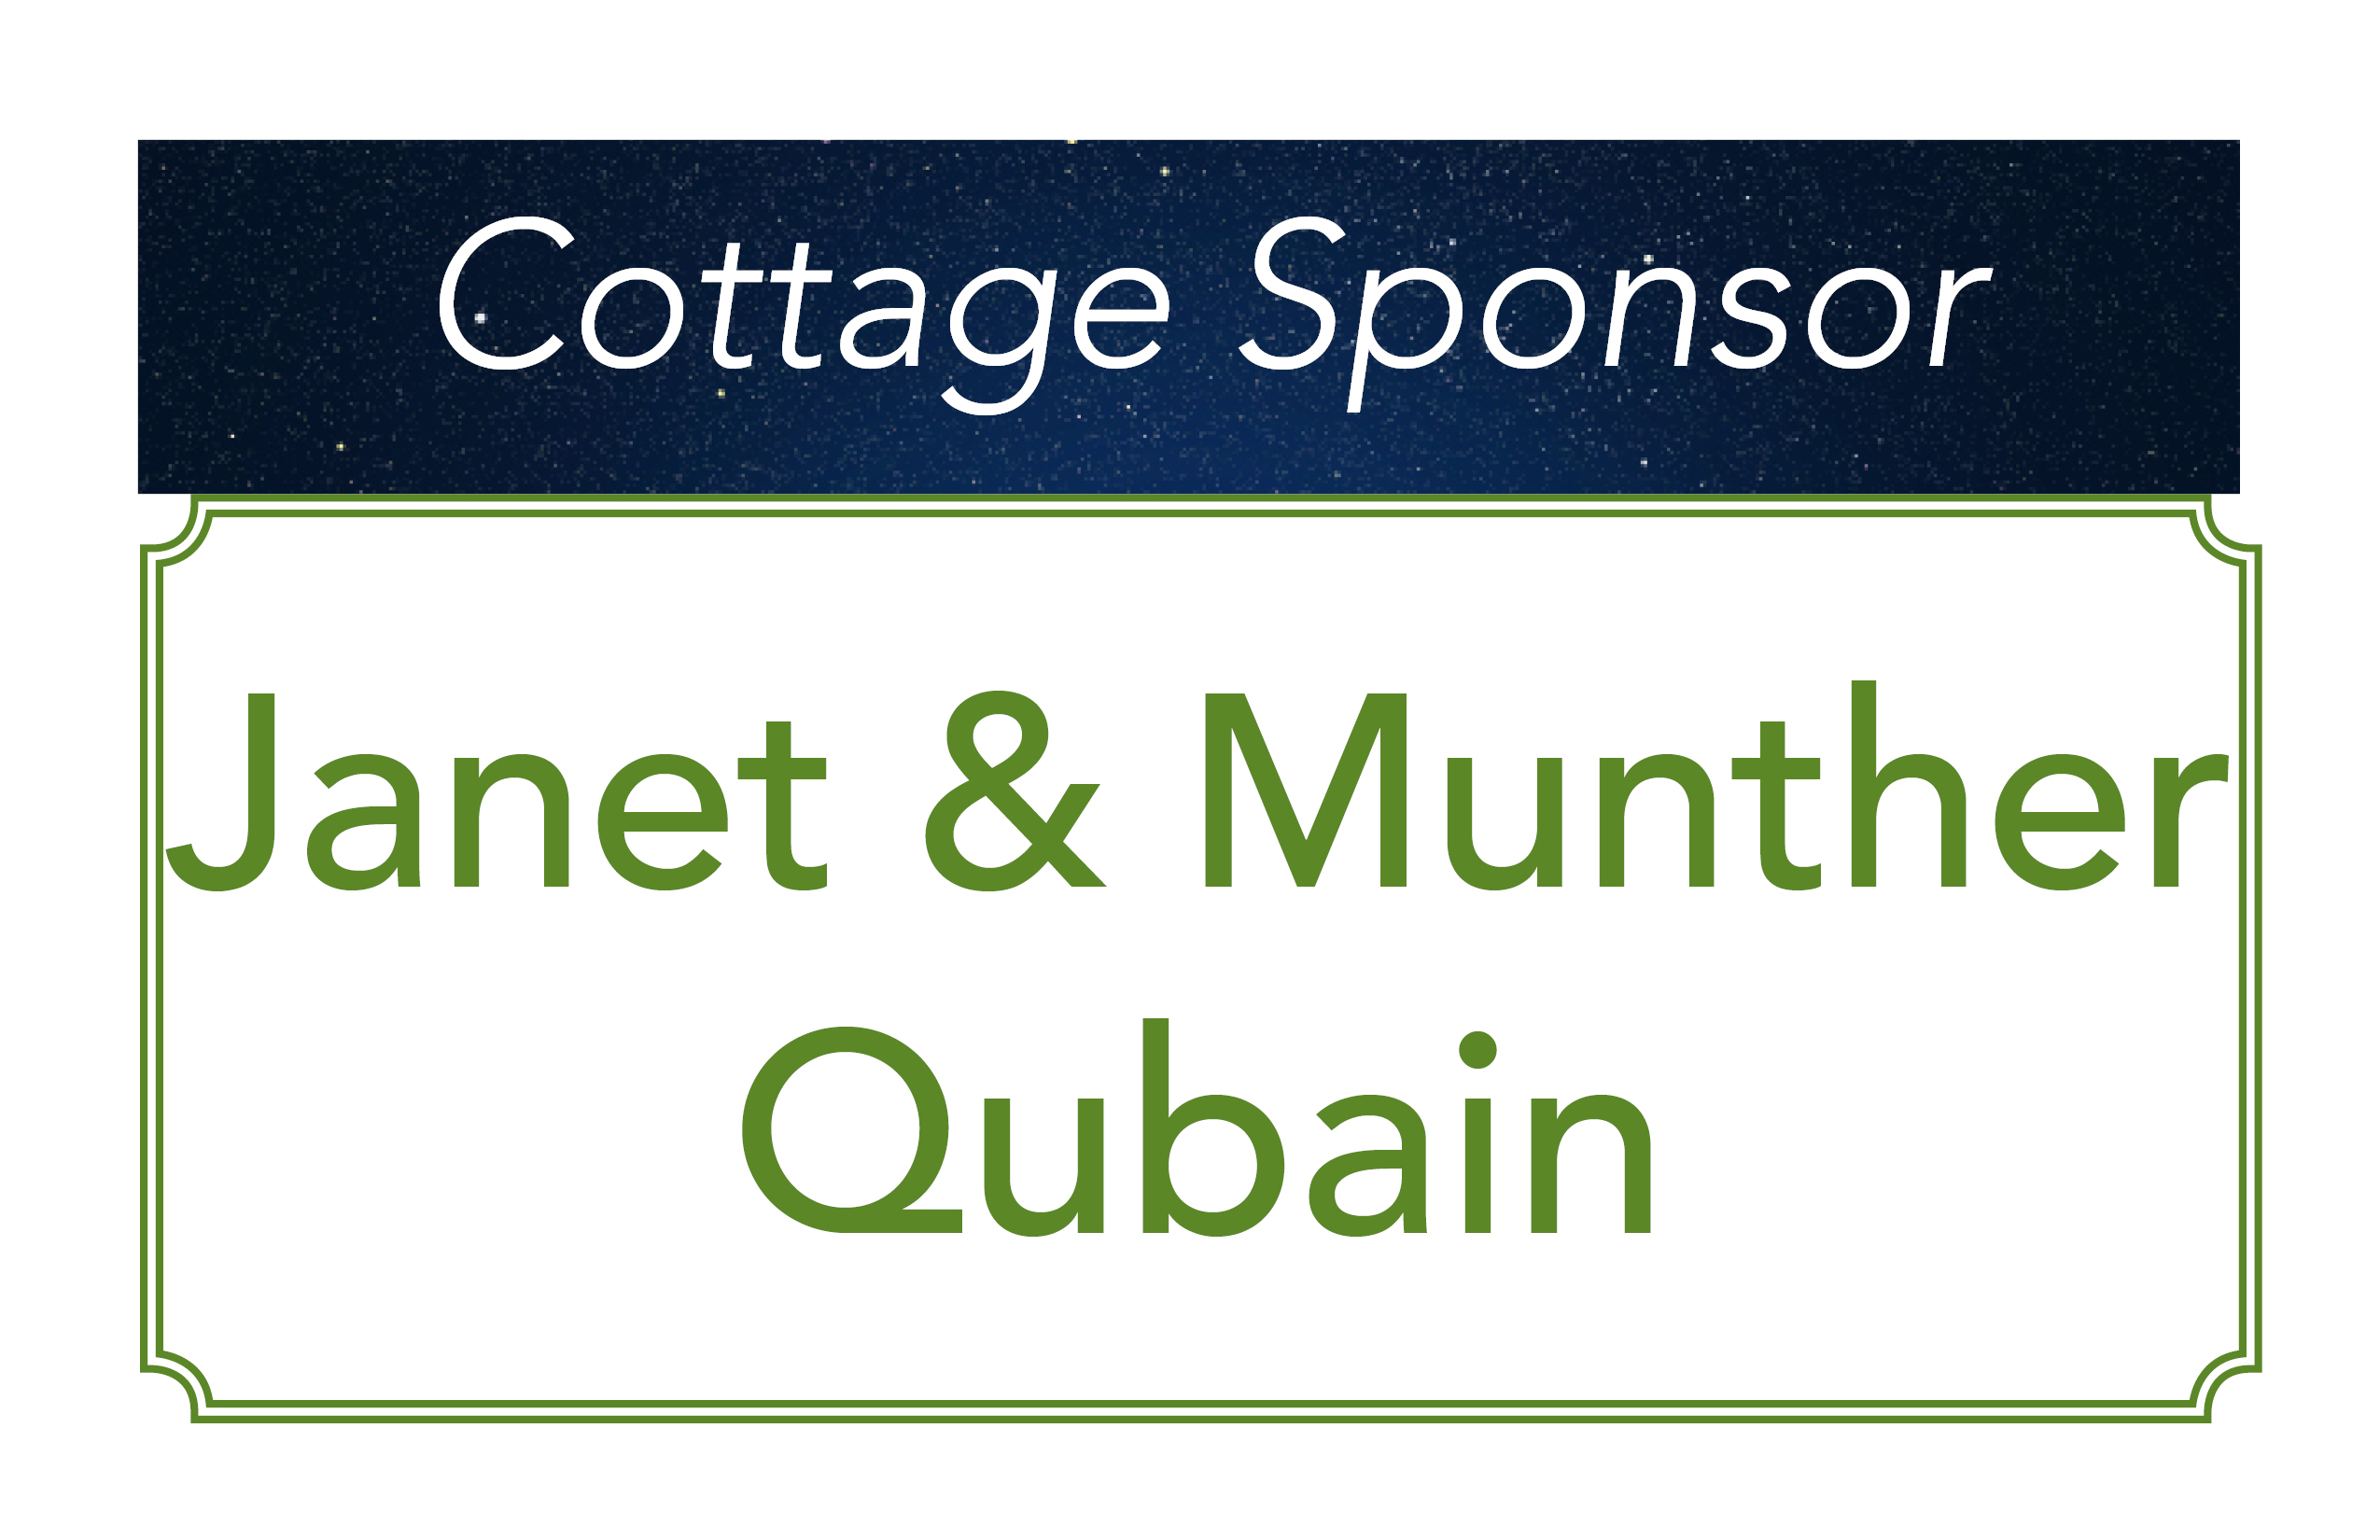 Janet and Munther Qubain, Cottage Sponsors